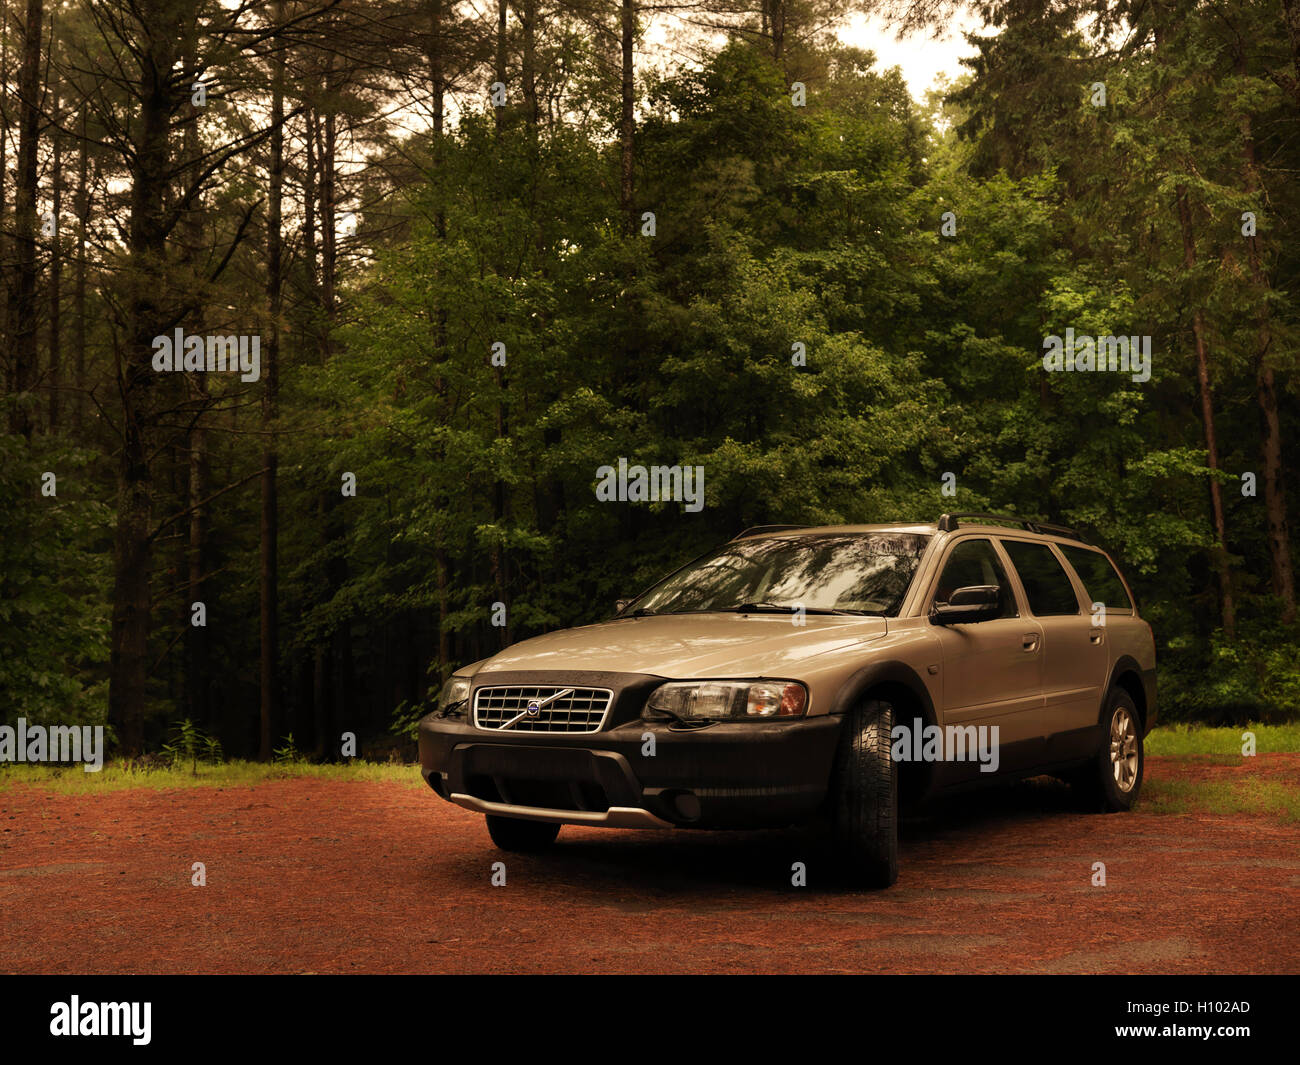 2004 Volvo XC70 car in the countryside nature scenic with forest trees in the background. Muskoka, Ontario, Canada. Stock Photo